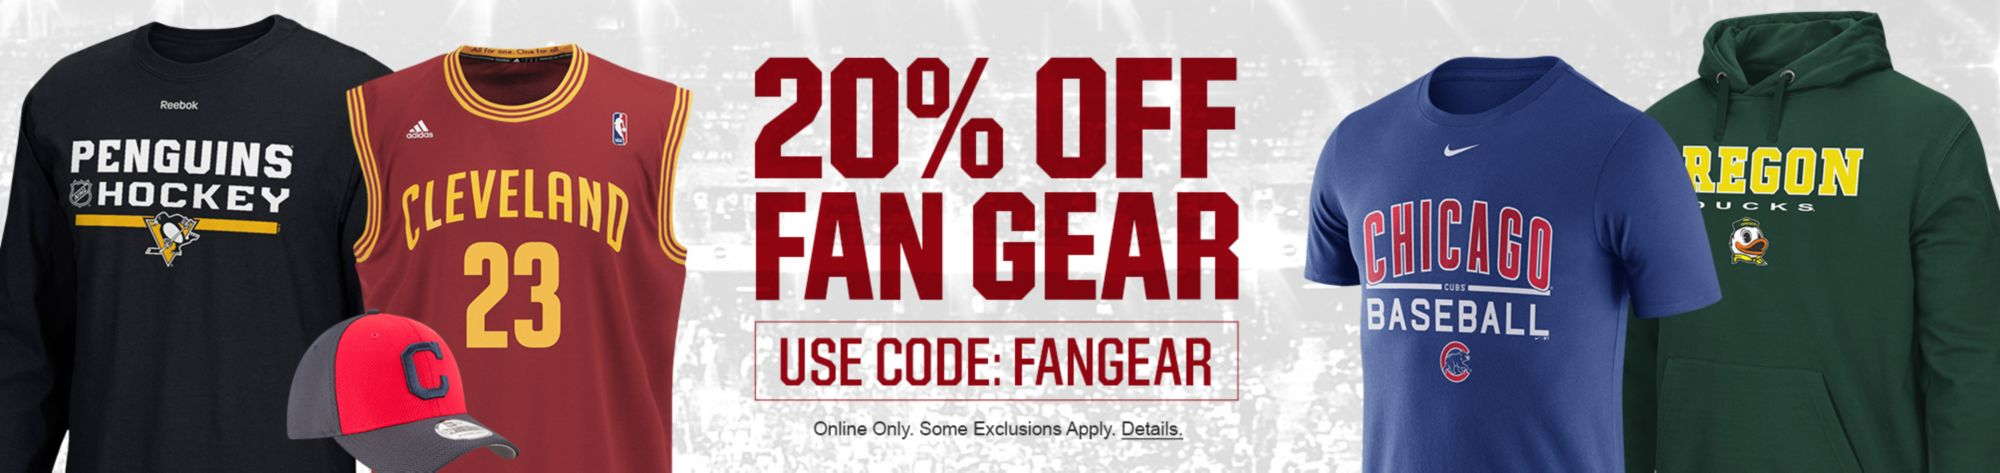 20% Off Fan Gear - 2 Days Only! Use Code: Fangear